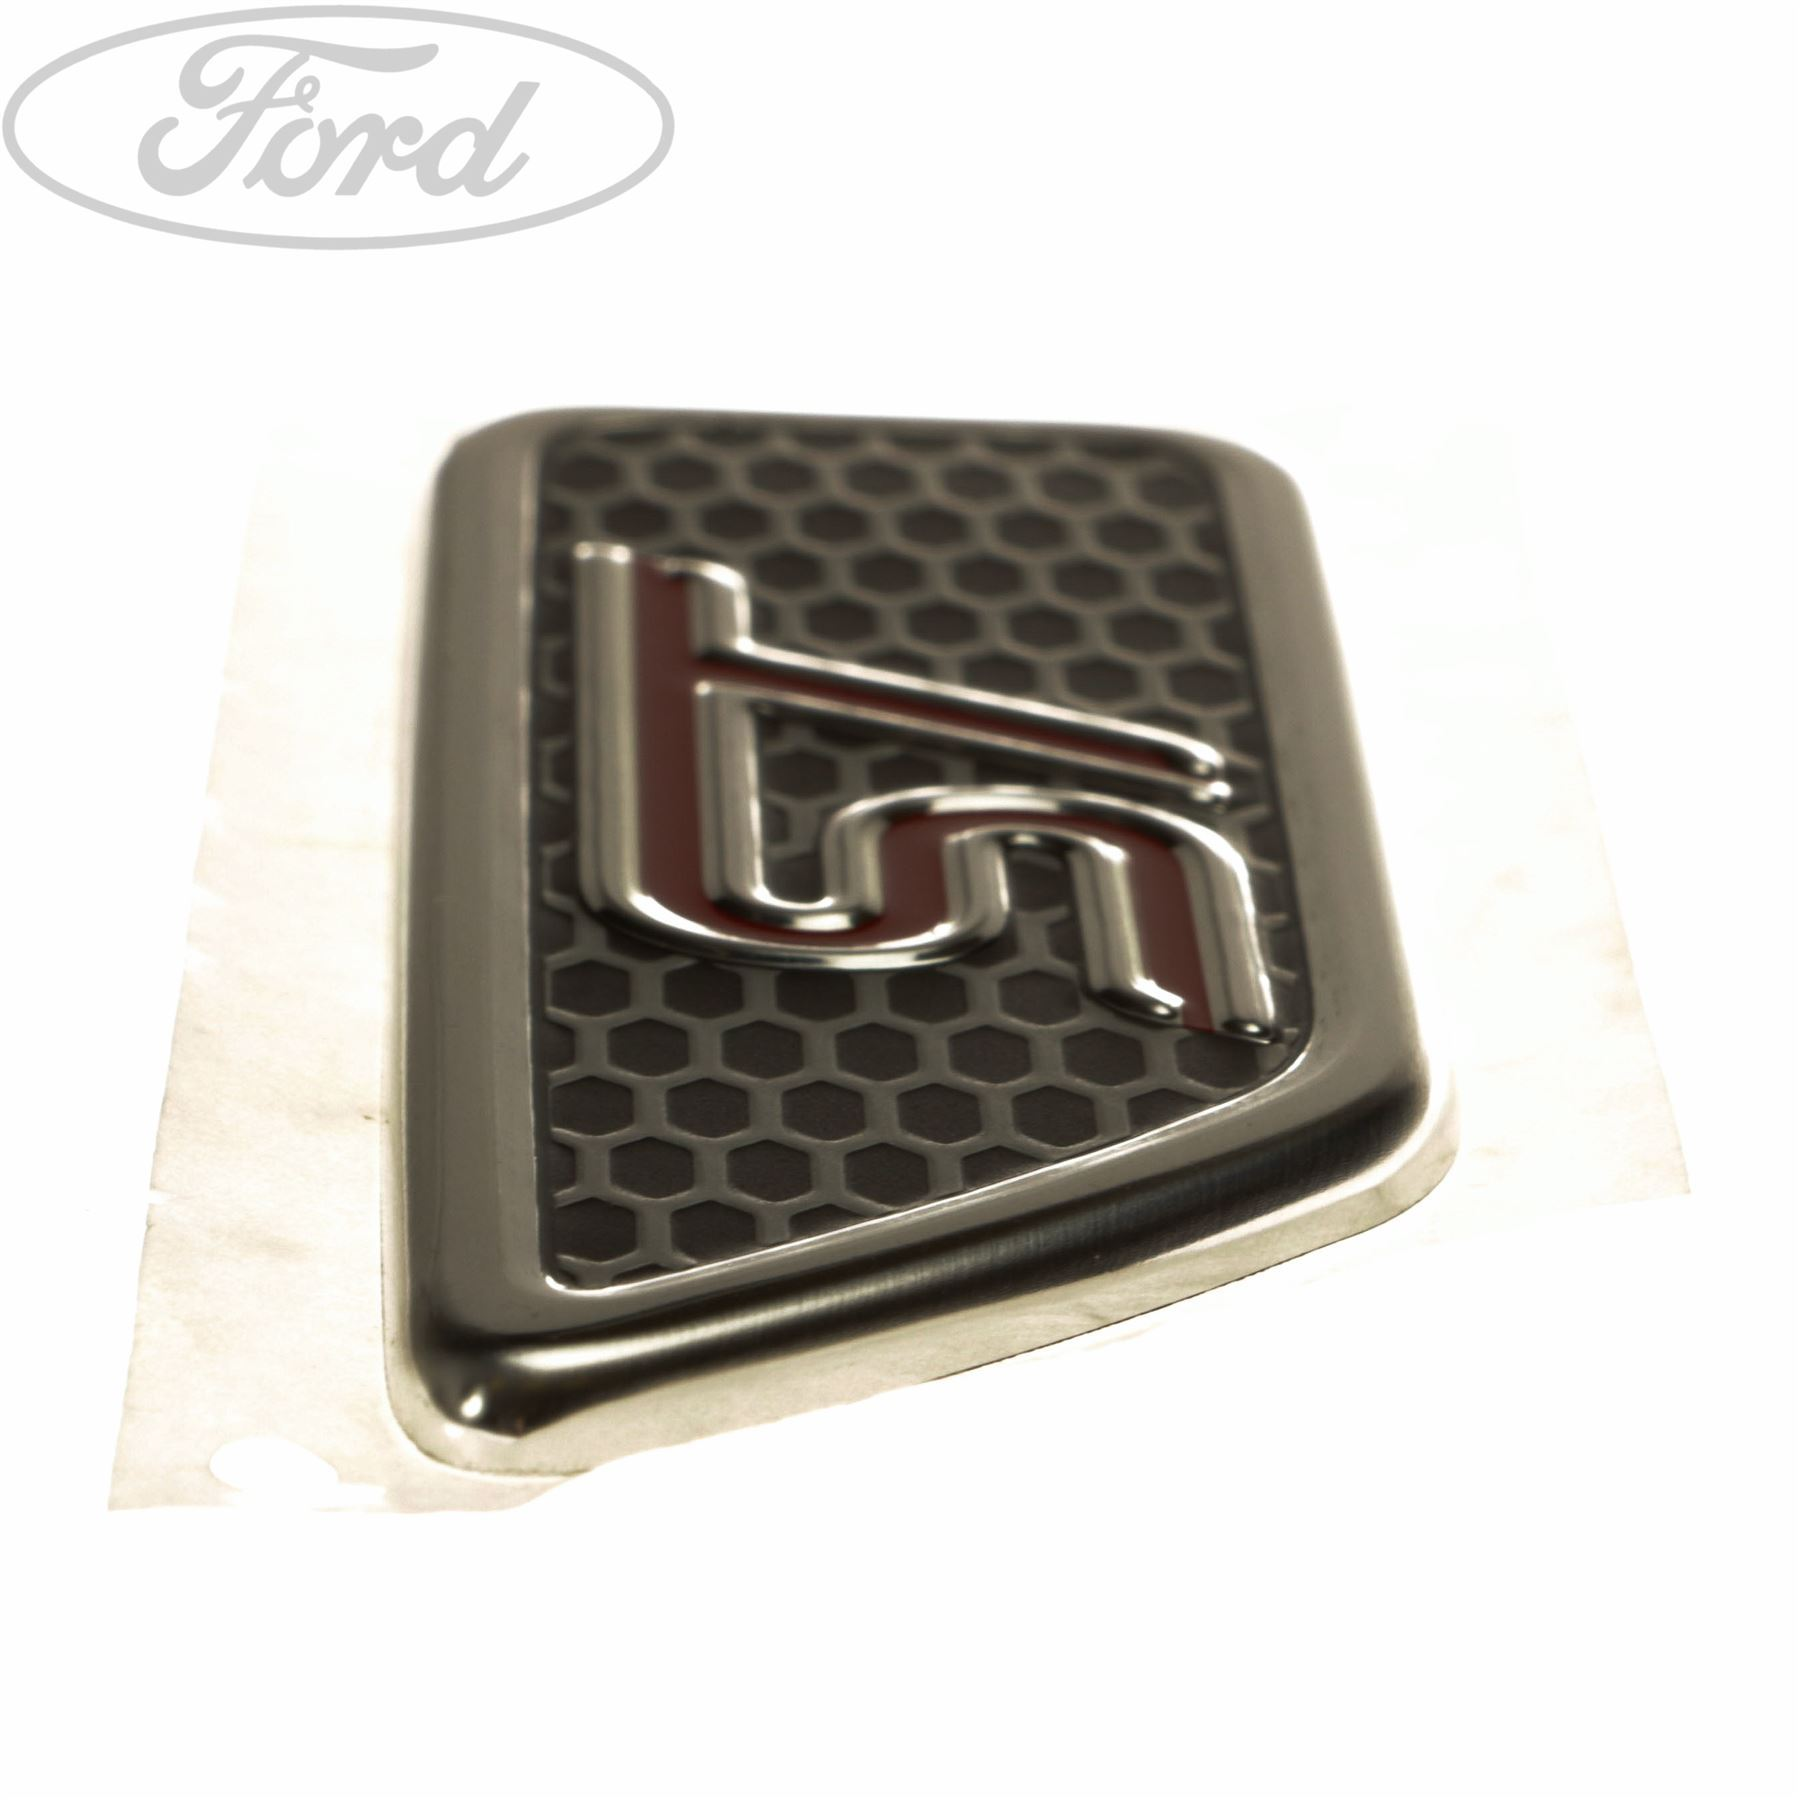 New Genuine Ford Focus ST Front Wing Badge LH 1520892